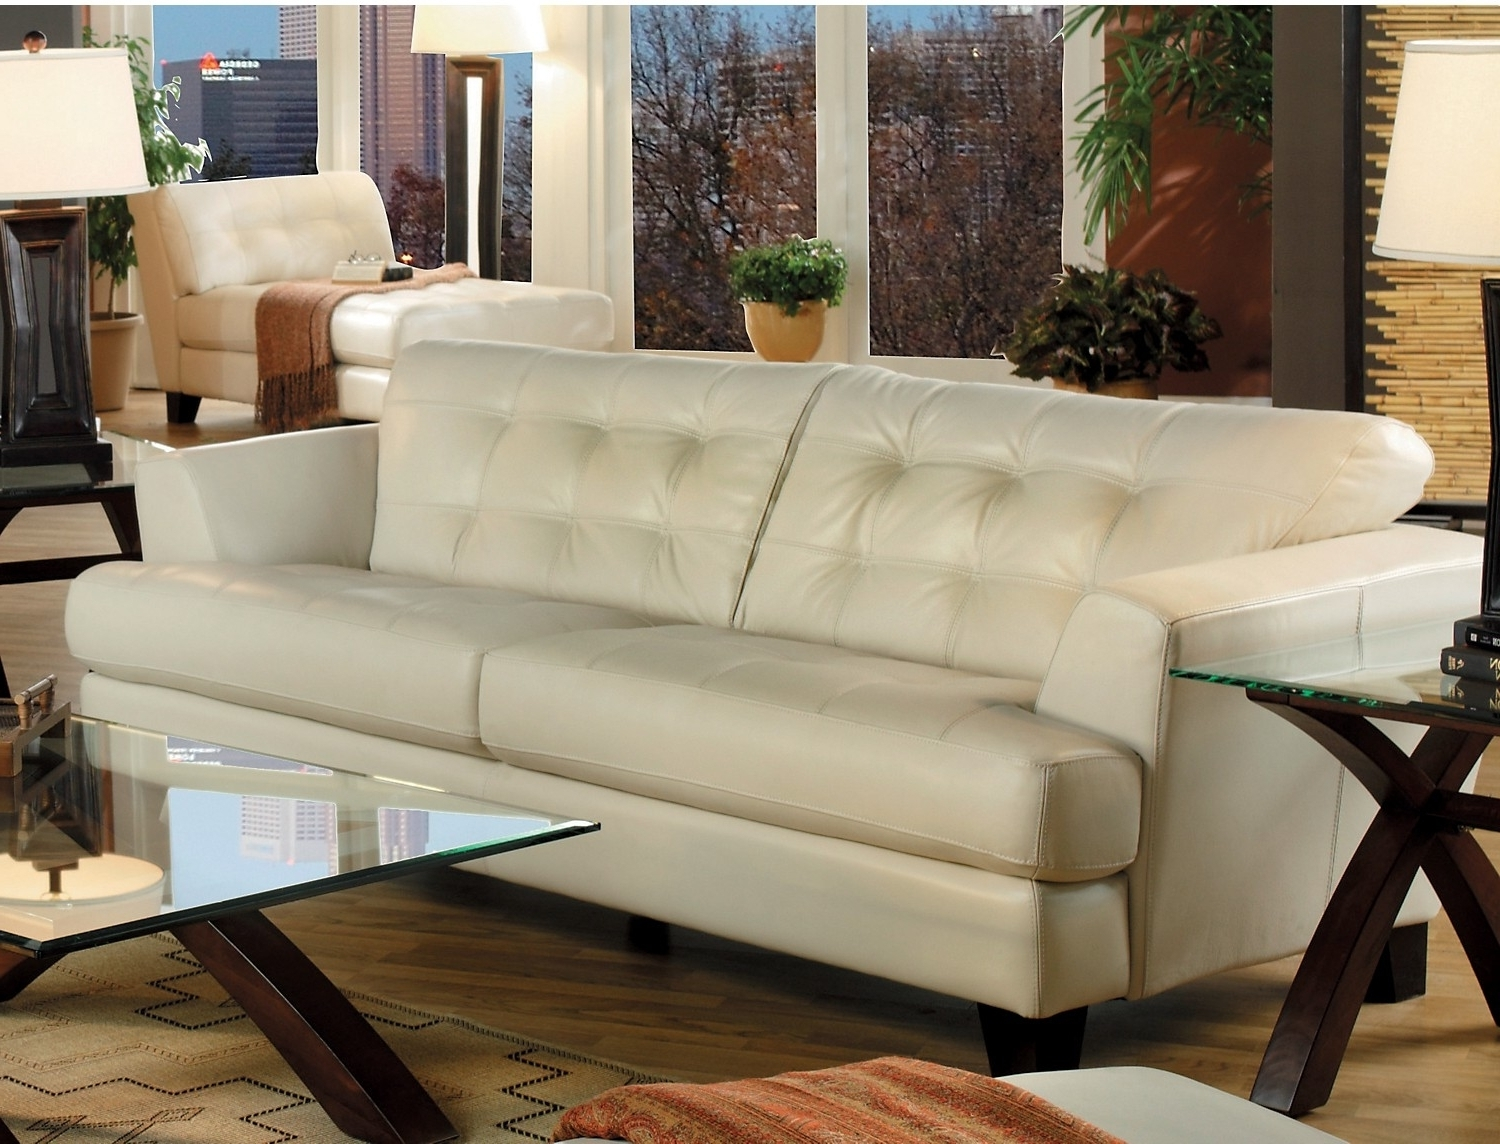 Most Current Cindy Crawford Sofas For Main Floor (View 13 of 20)